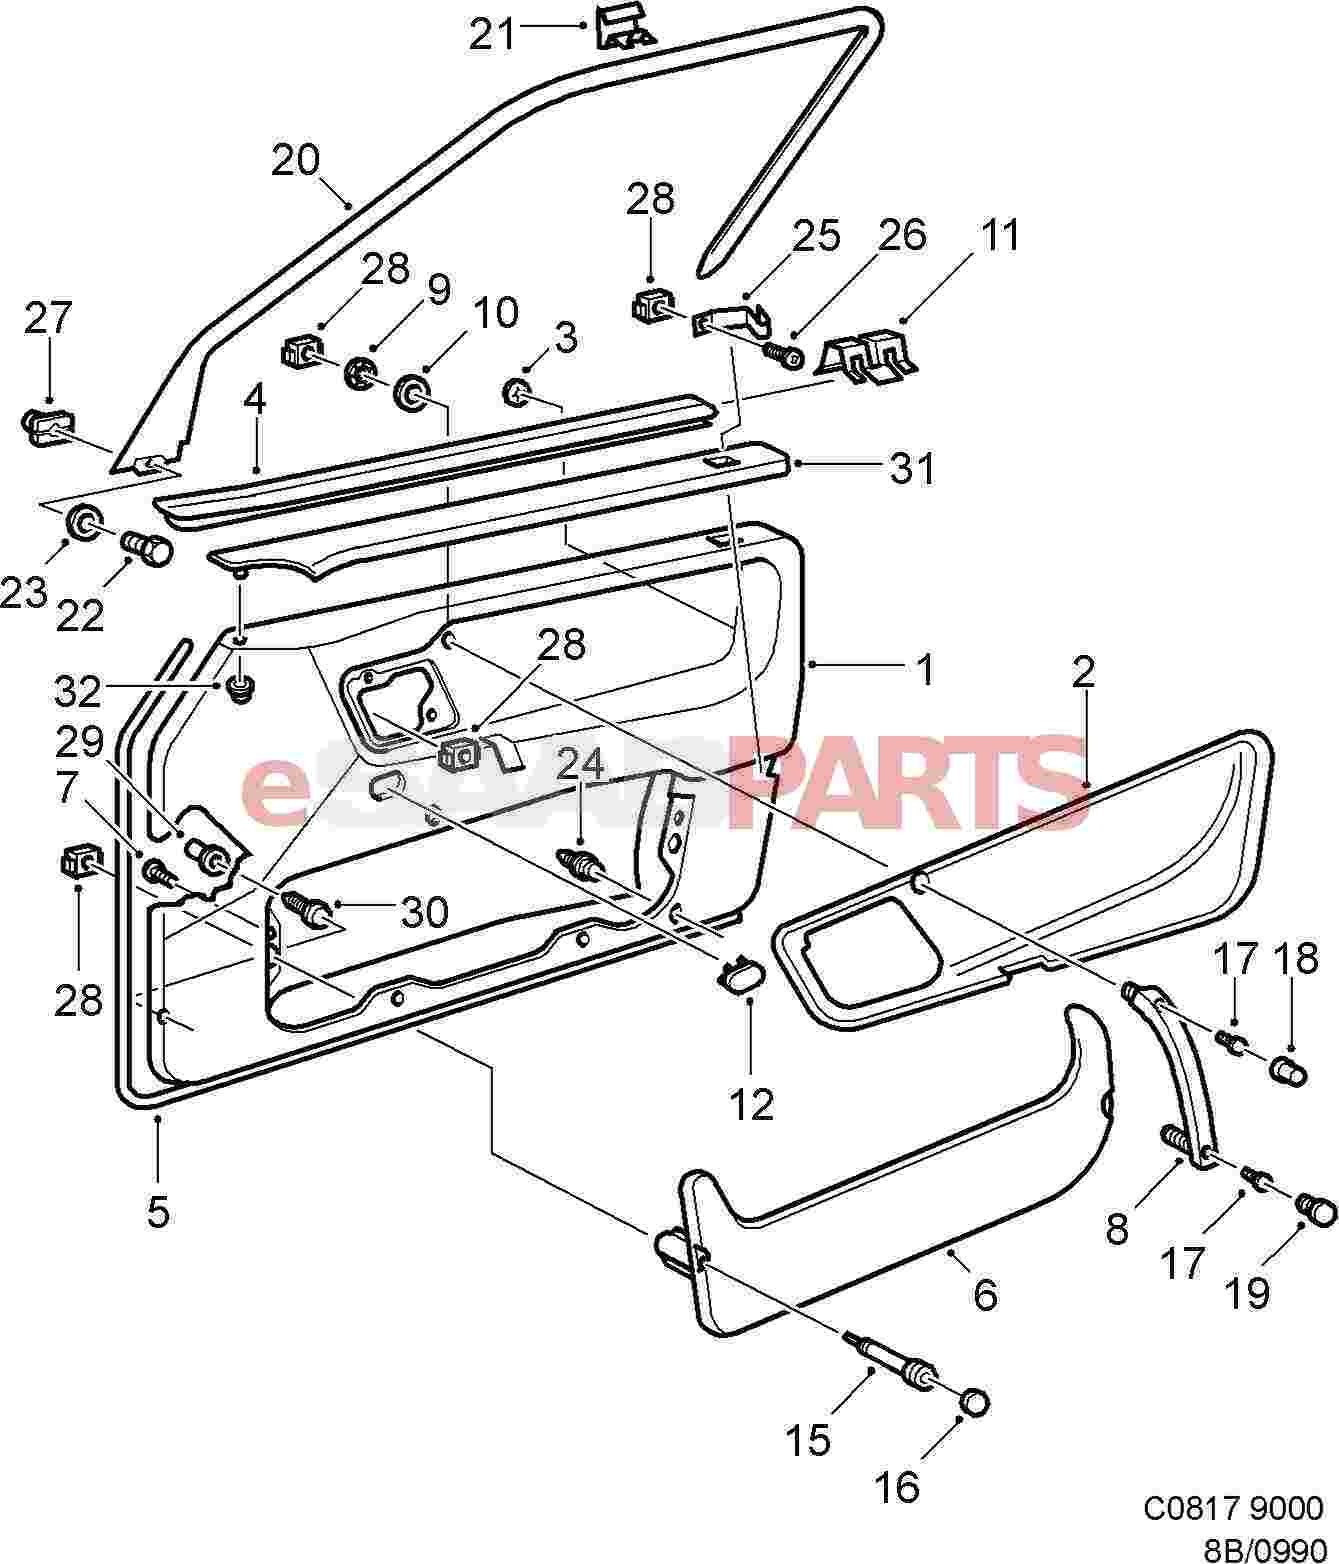 Oldsmobile Cutlass Ciera Steering Column Diagram